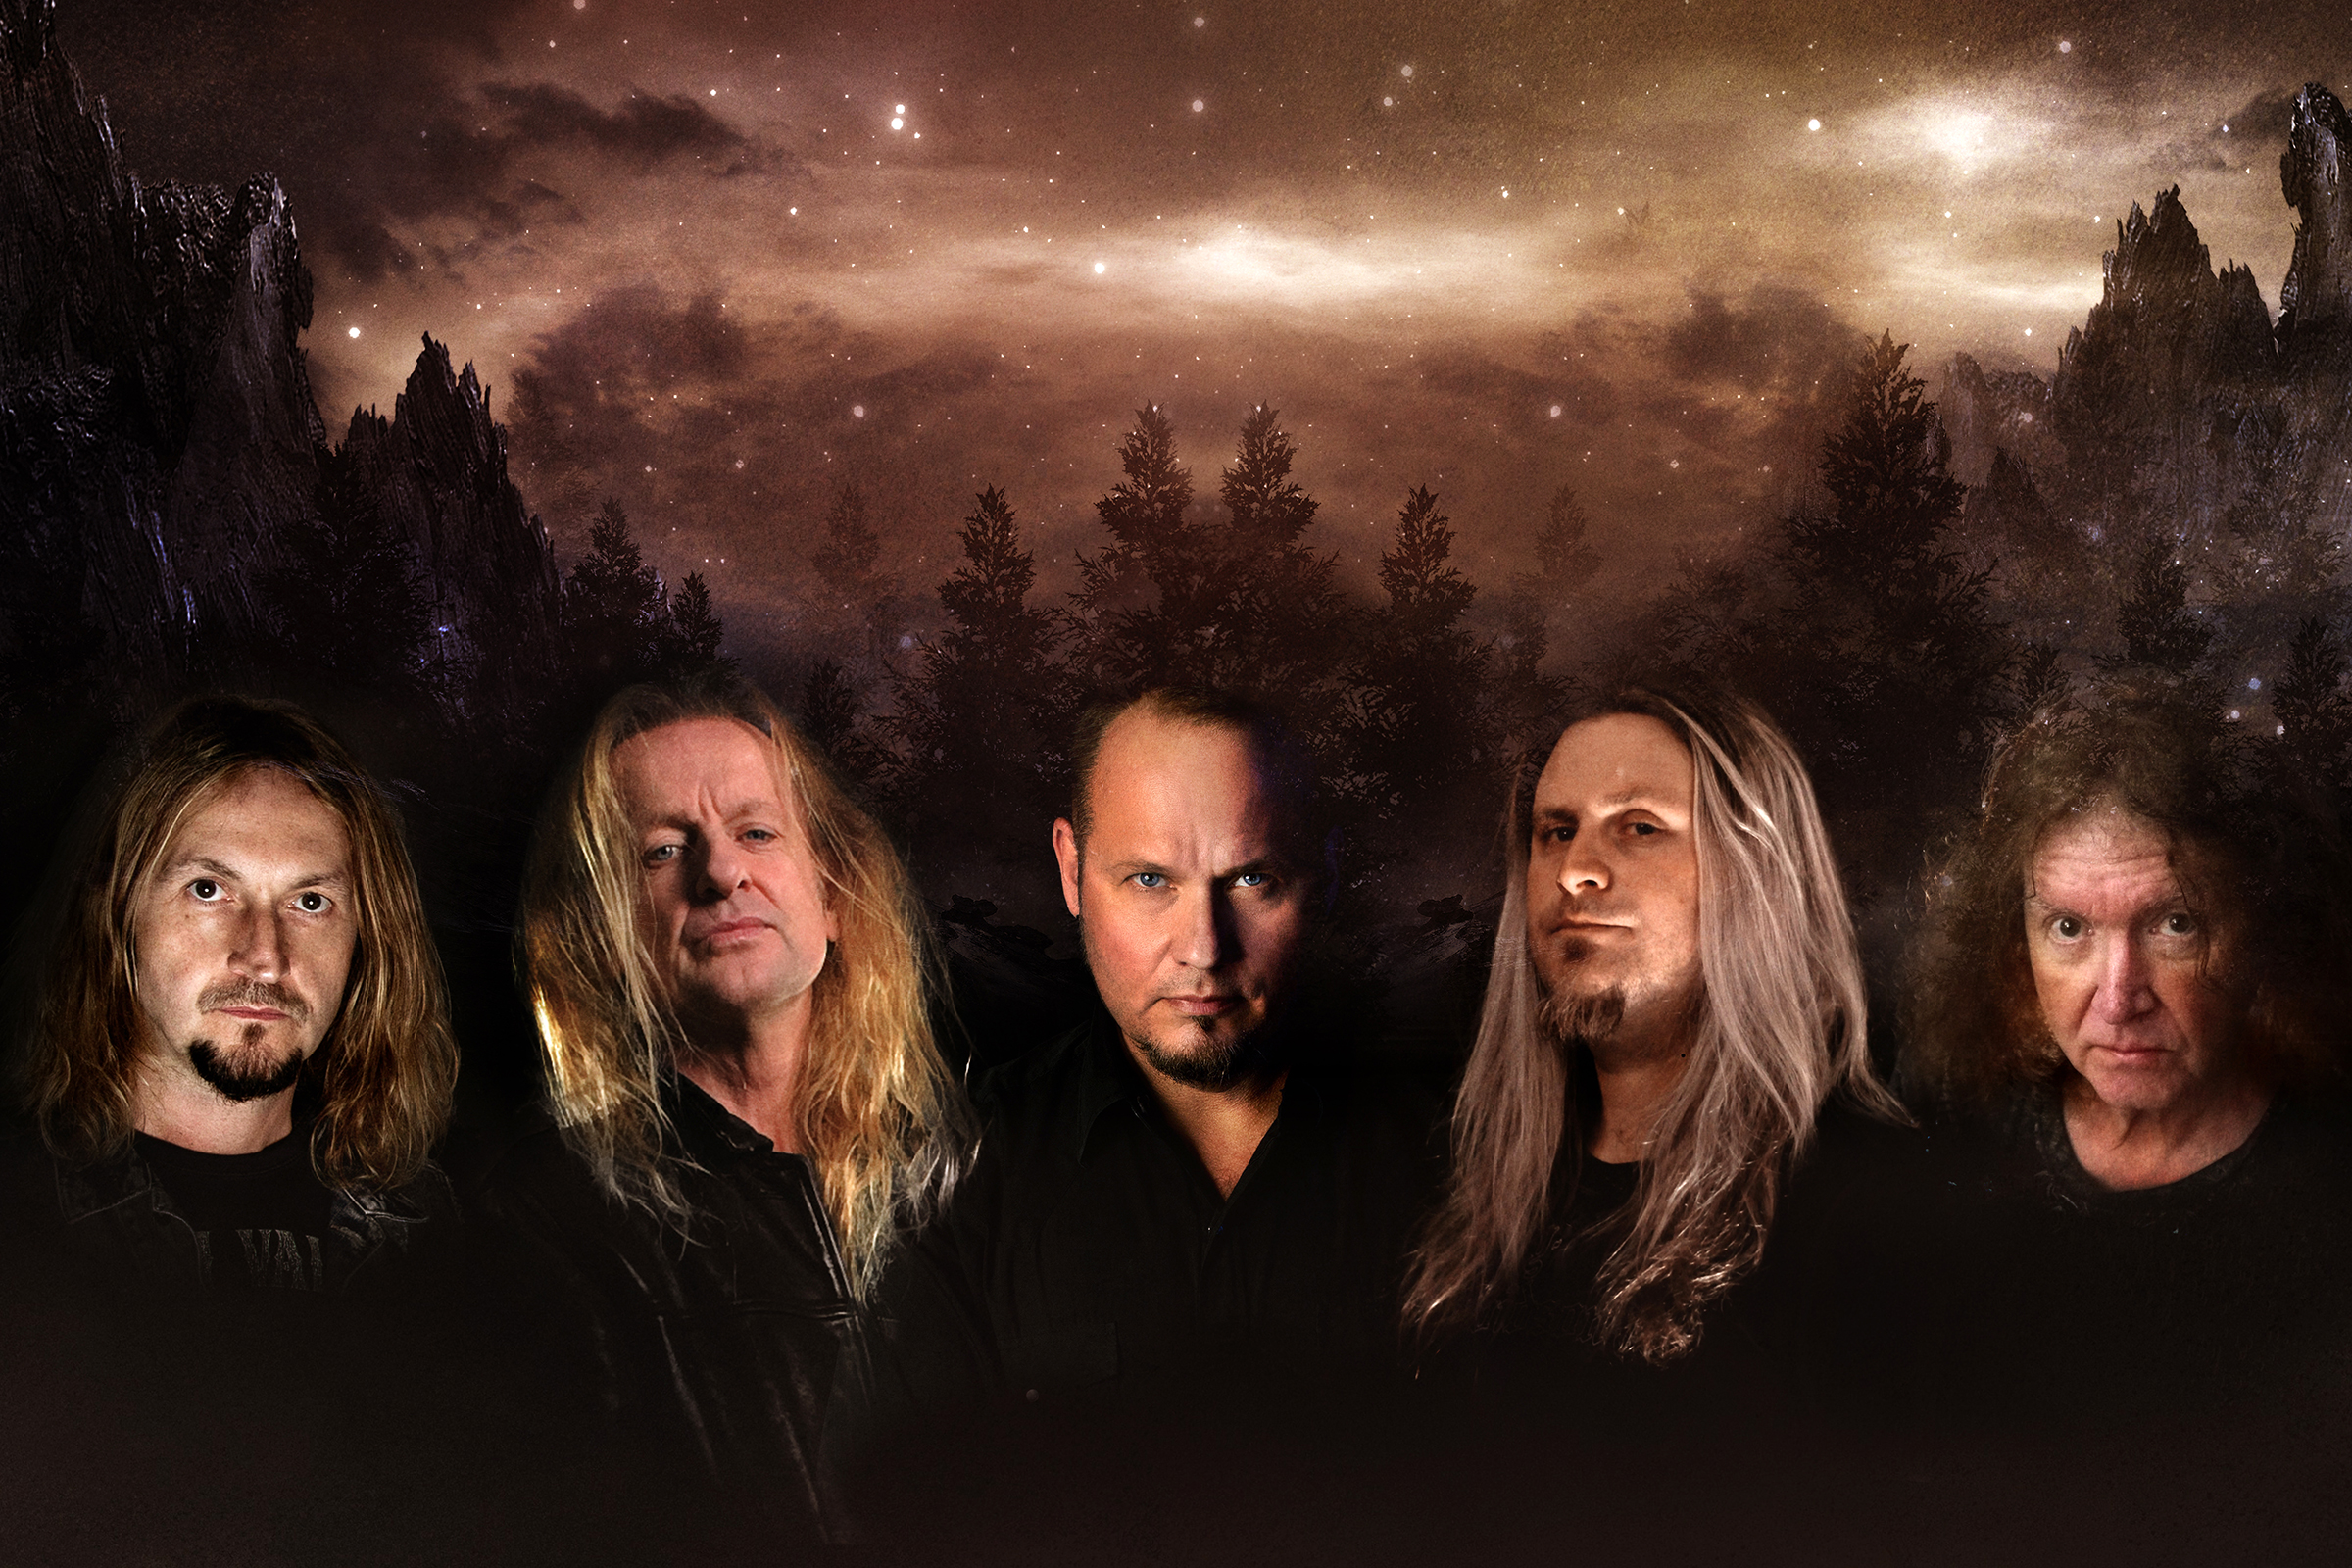 Ex-Judas Priest Guitarist K.K. Downing Forms Band With Other Former Priest Members